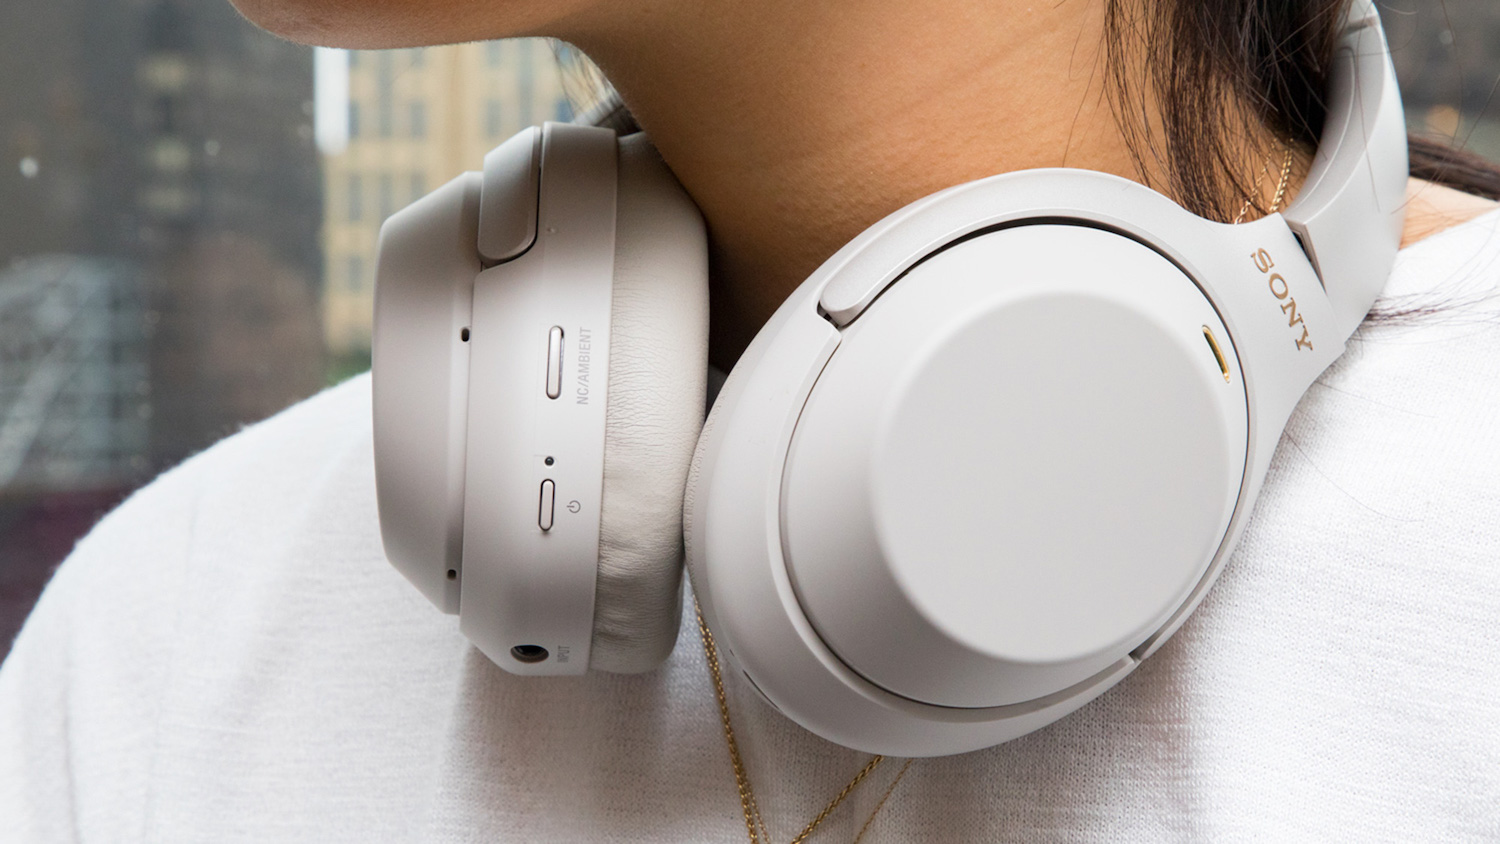 Best noise cancelling headphones: Sony WH-1000XM3